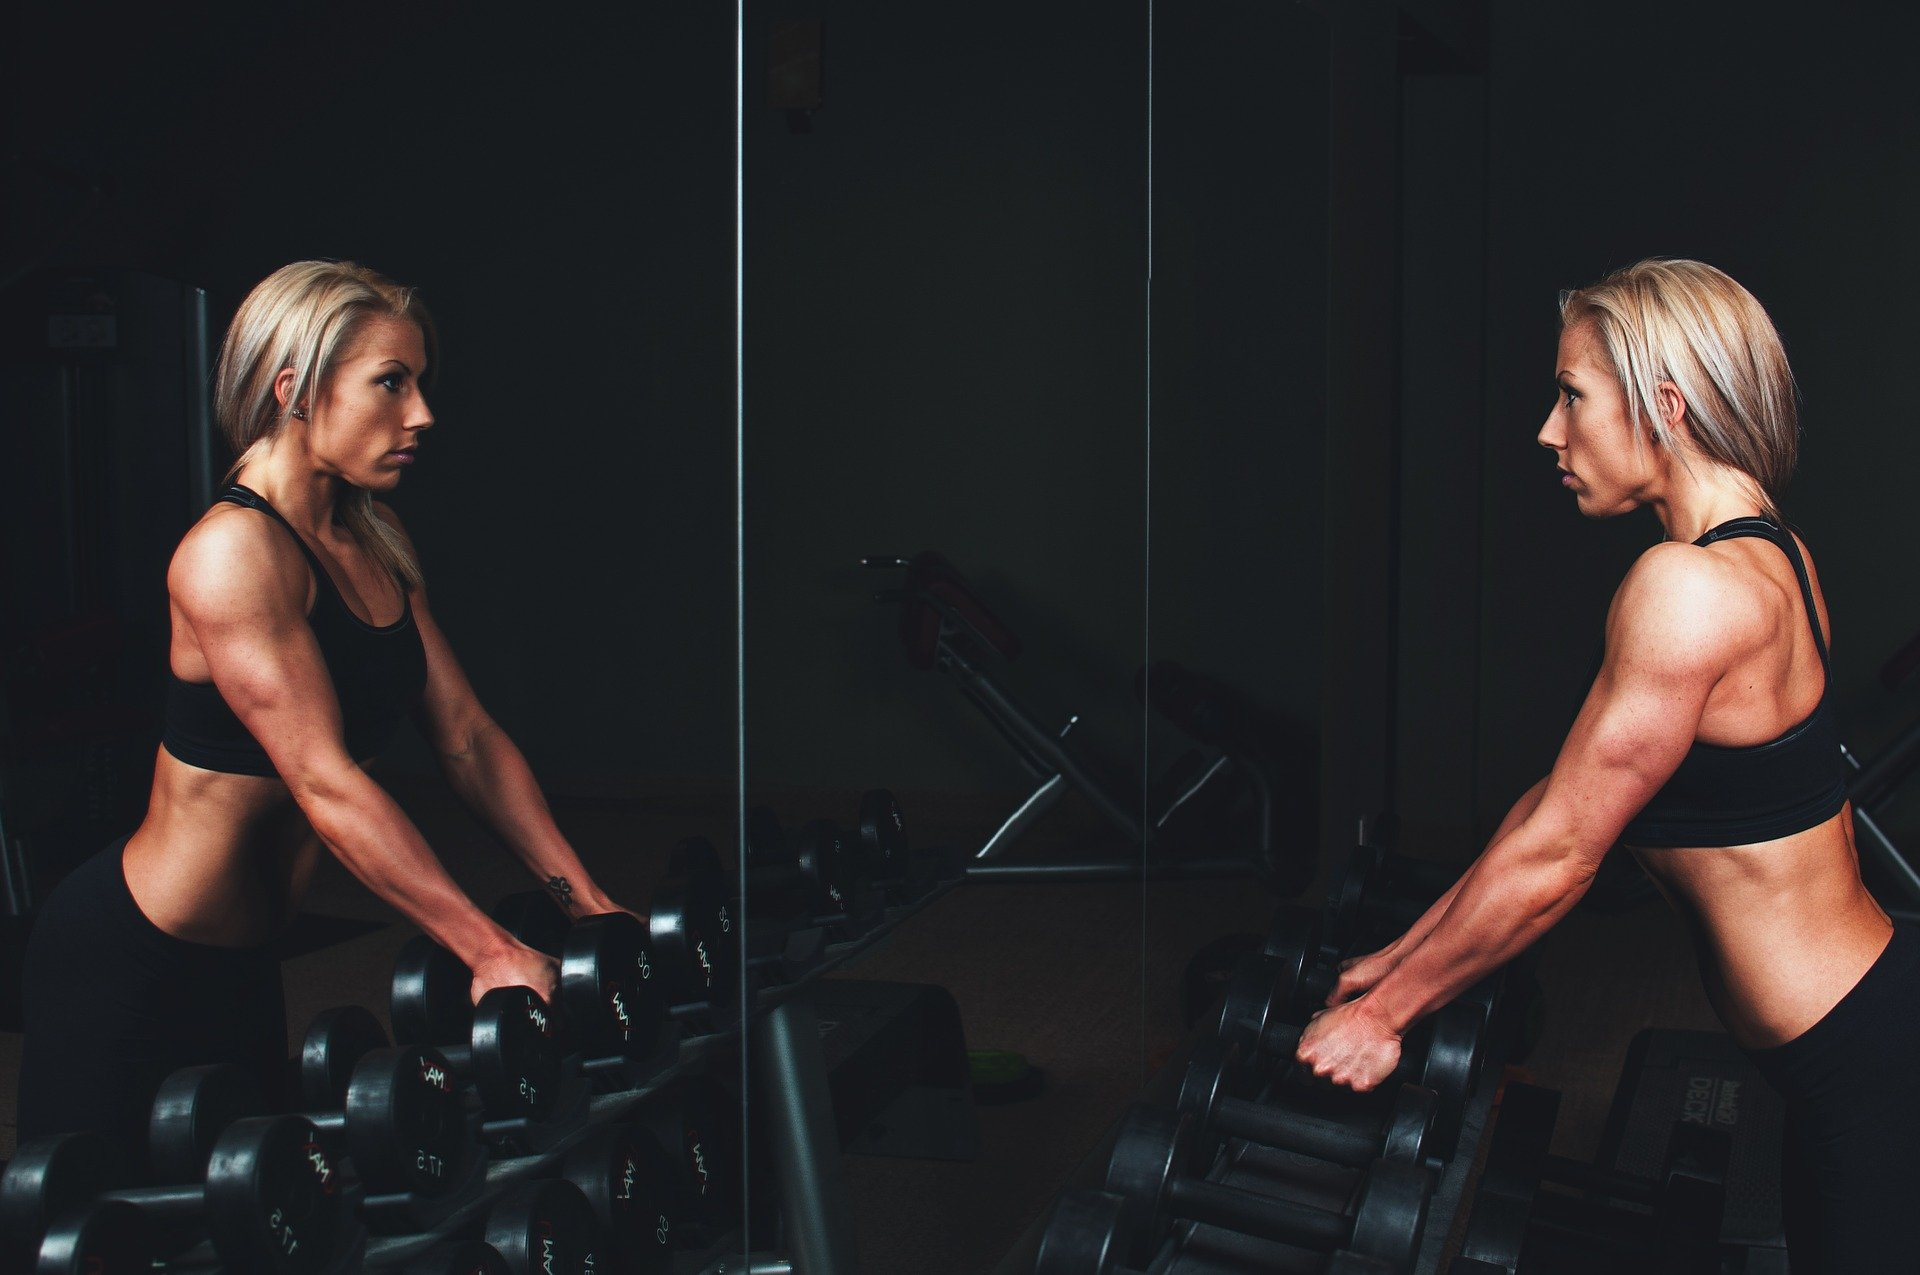 Women Gym Workout Images 6